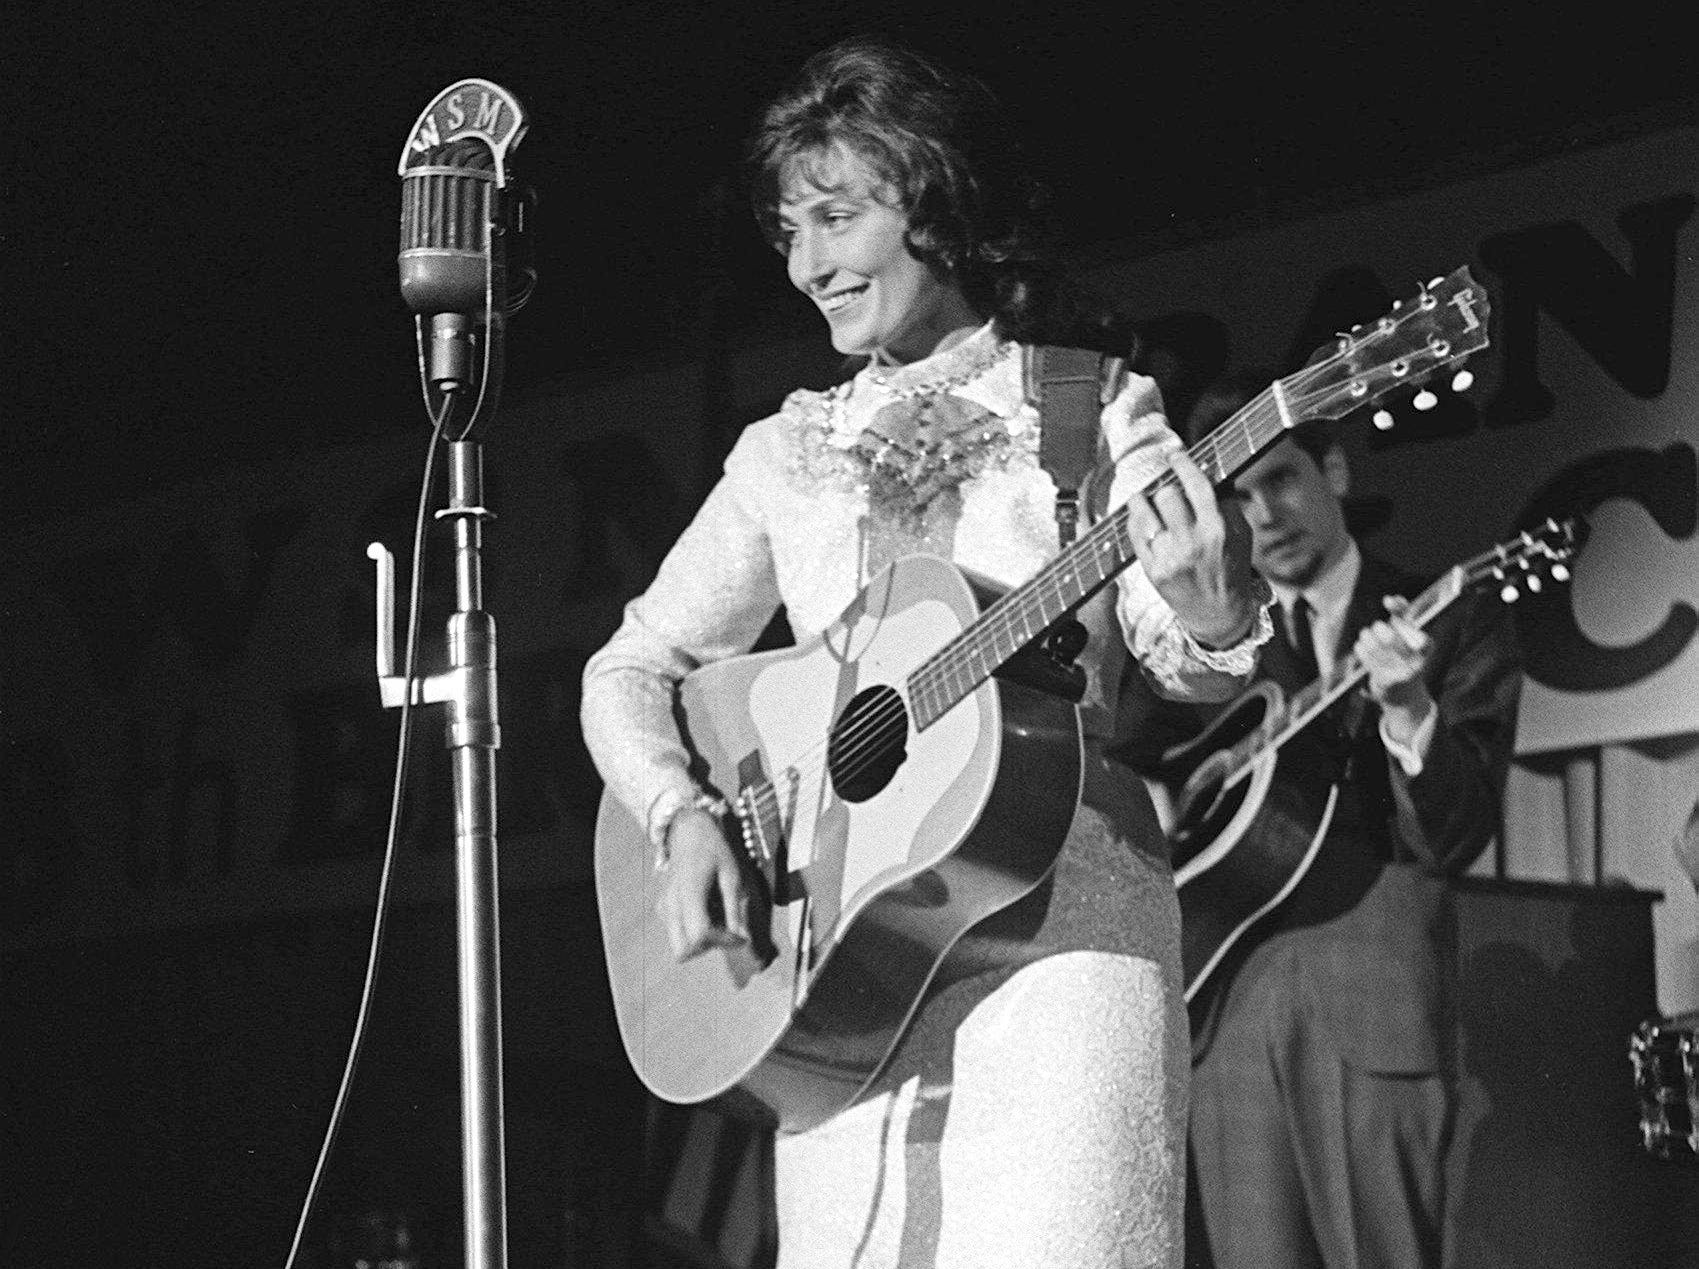 Loretta Lynn steps up to the mic at one of the shows during the 12th annual Country Music Festival at Municipal Auditorium, Nov. 1, 1963.